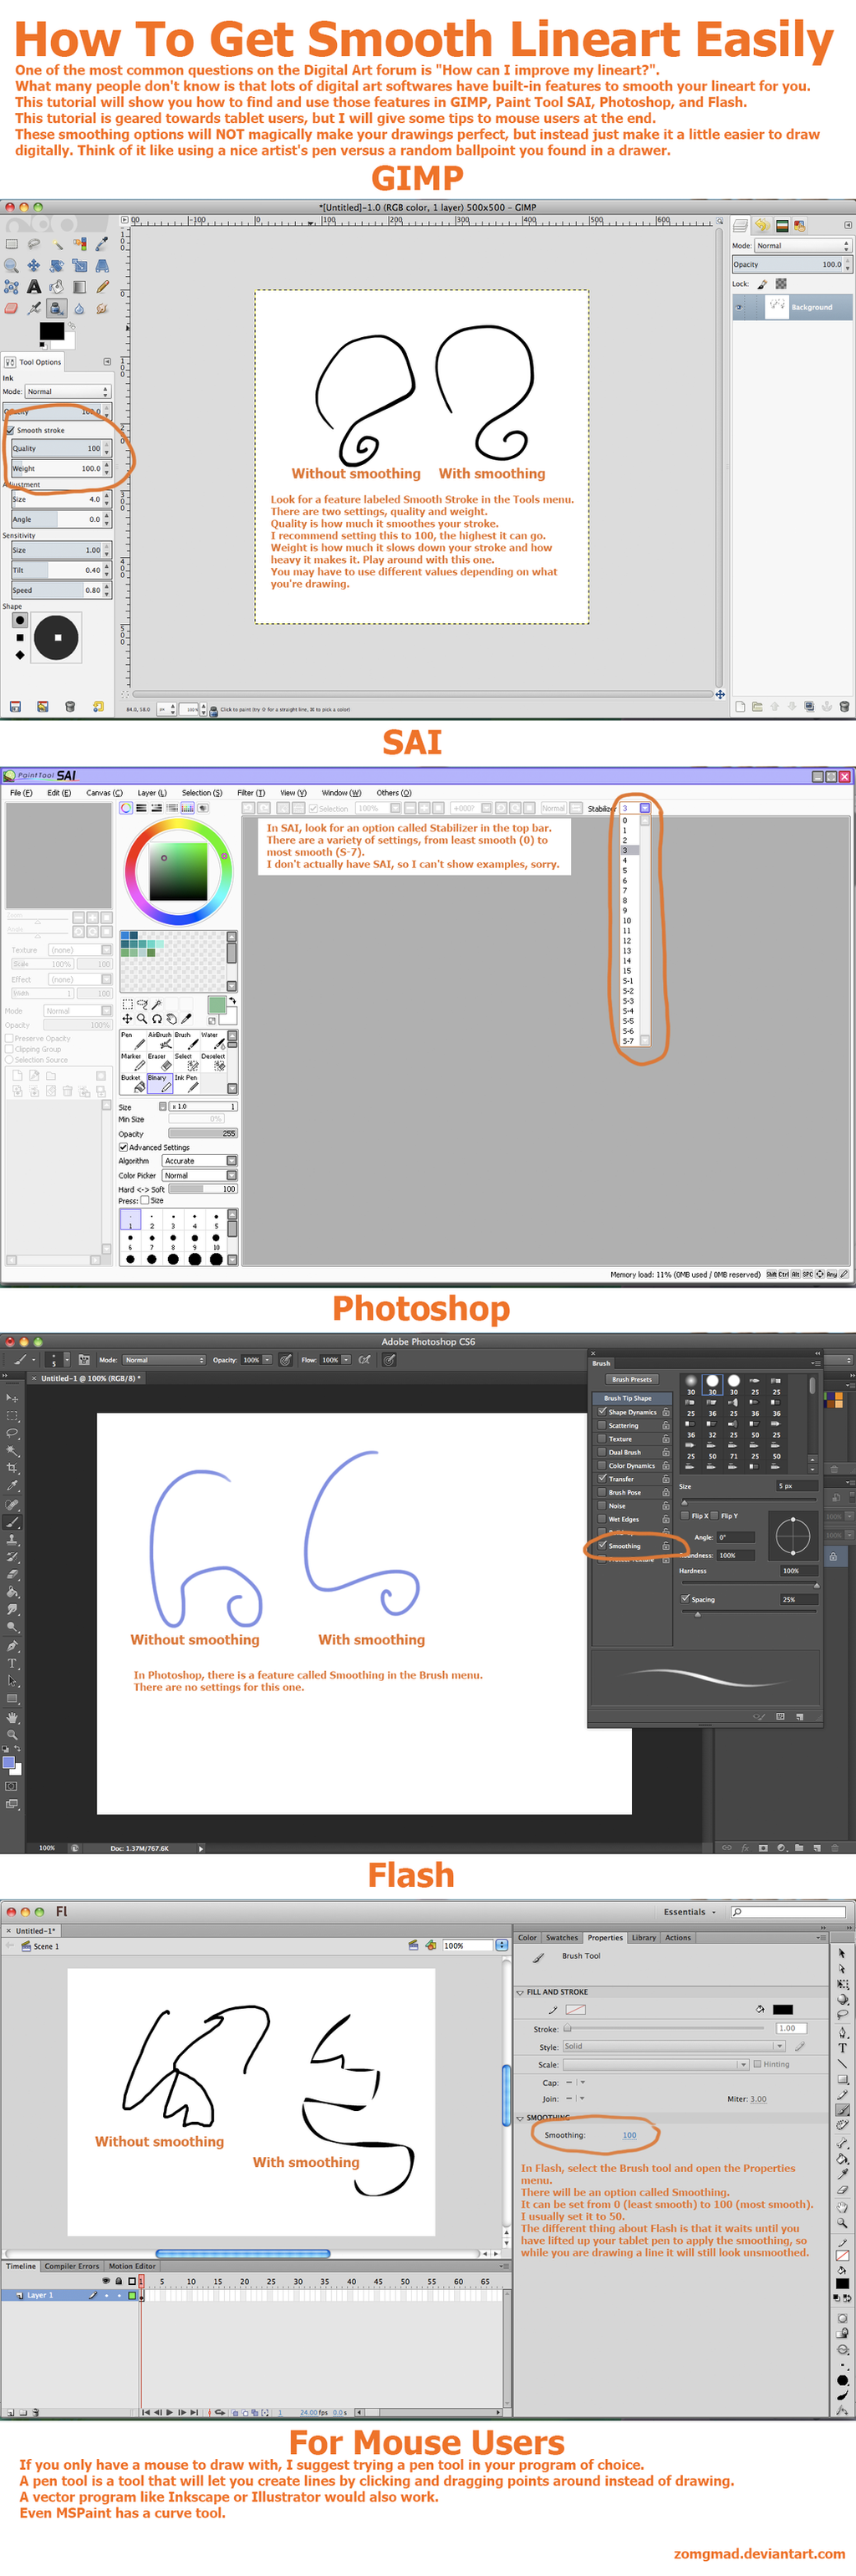 How to get smooth lineart easily tutorial by zomgmad on deviantart how to get smooth lineart easily tutorial by zomgmad baditri Choice Image